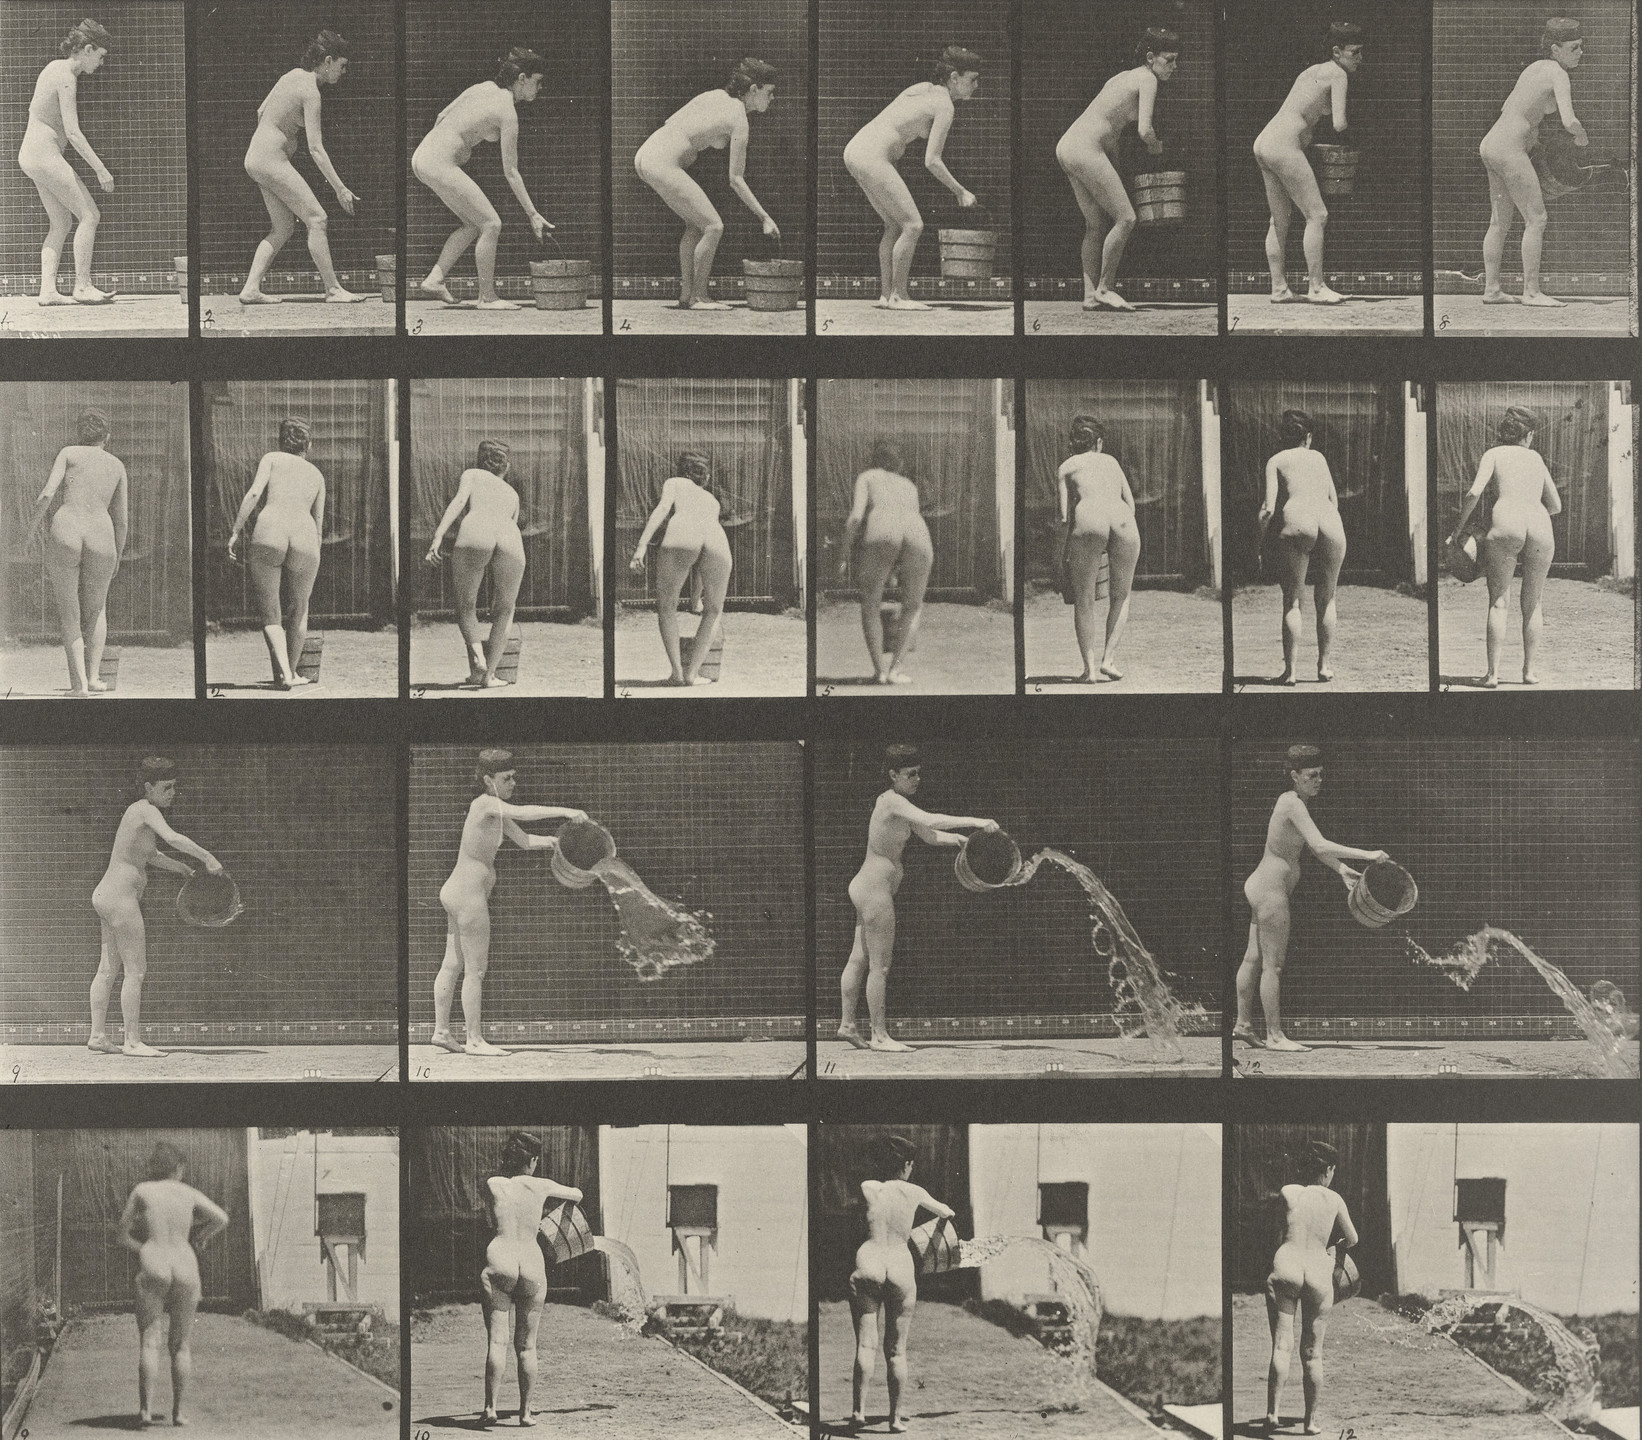 Eadweard J. Muybridge. Woman Emptying a Bucket of Water: Plate 401 from Animal Locomotion (1887). 1884-86